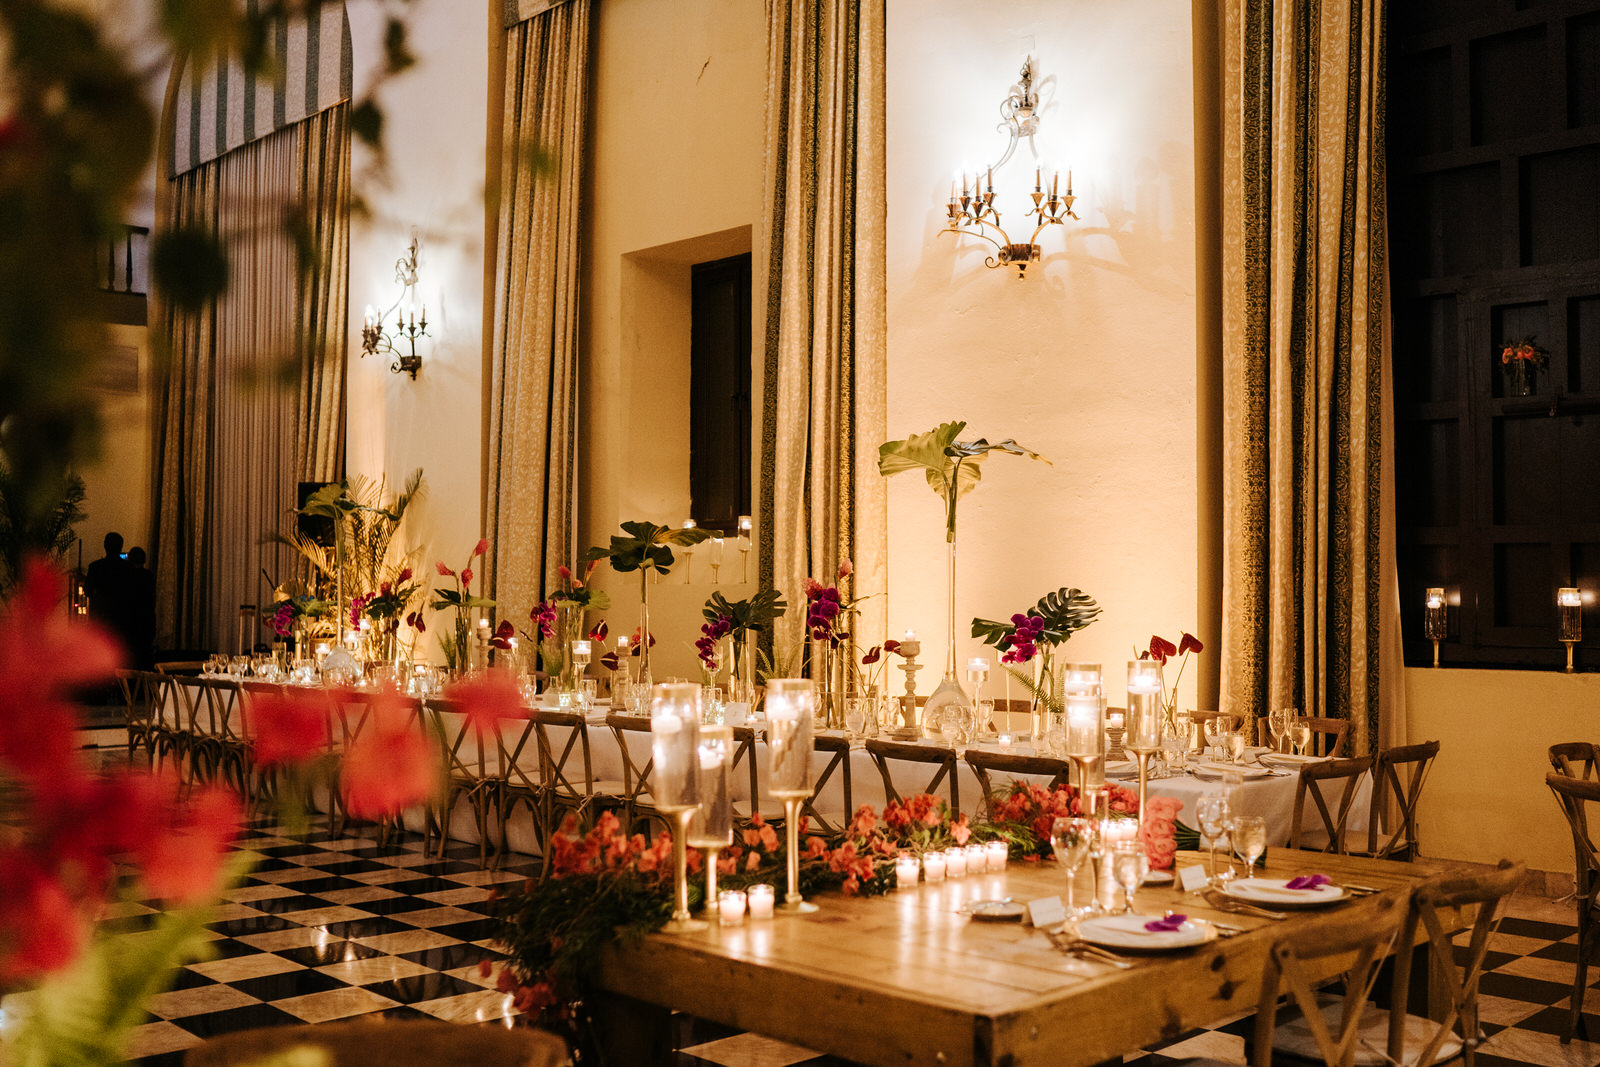 Wide photograph of the decoration in the Hotel El Convento wedding room accentuated with green leaves and red flowers